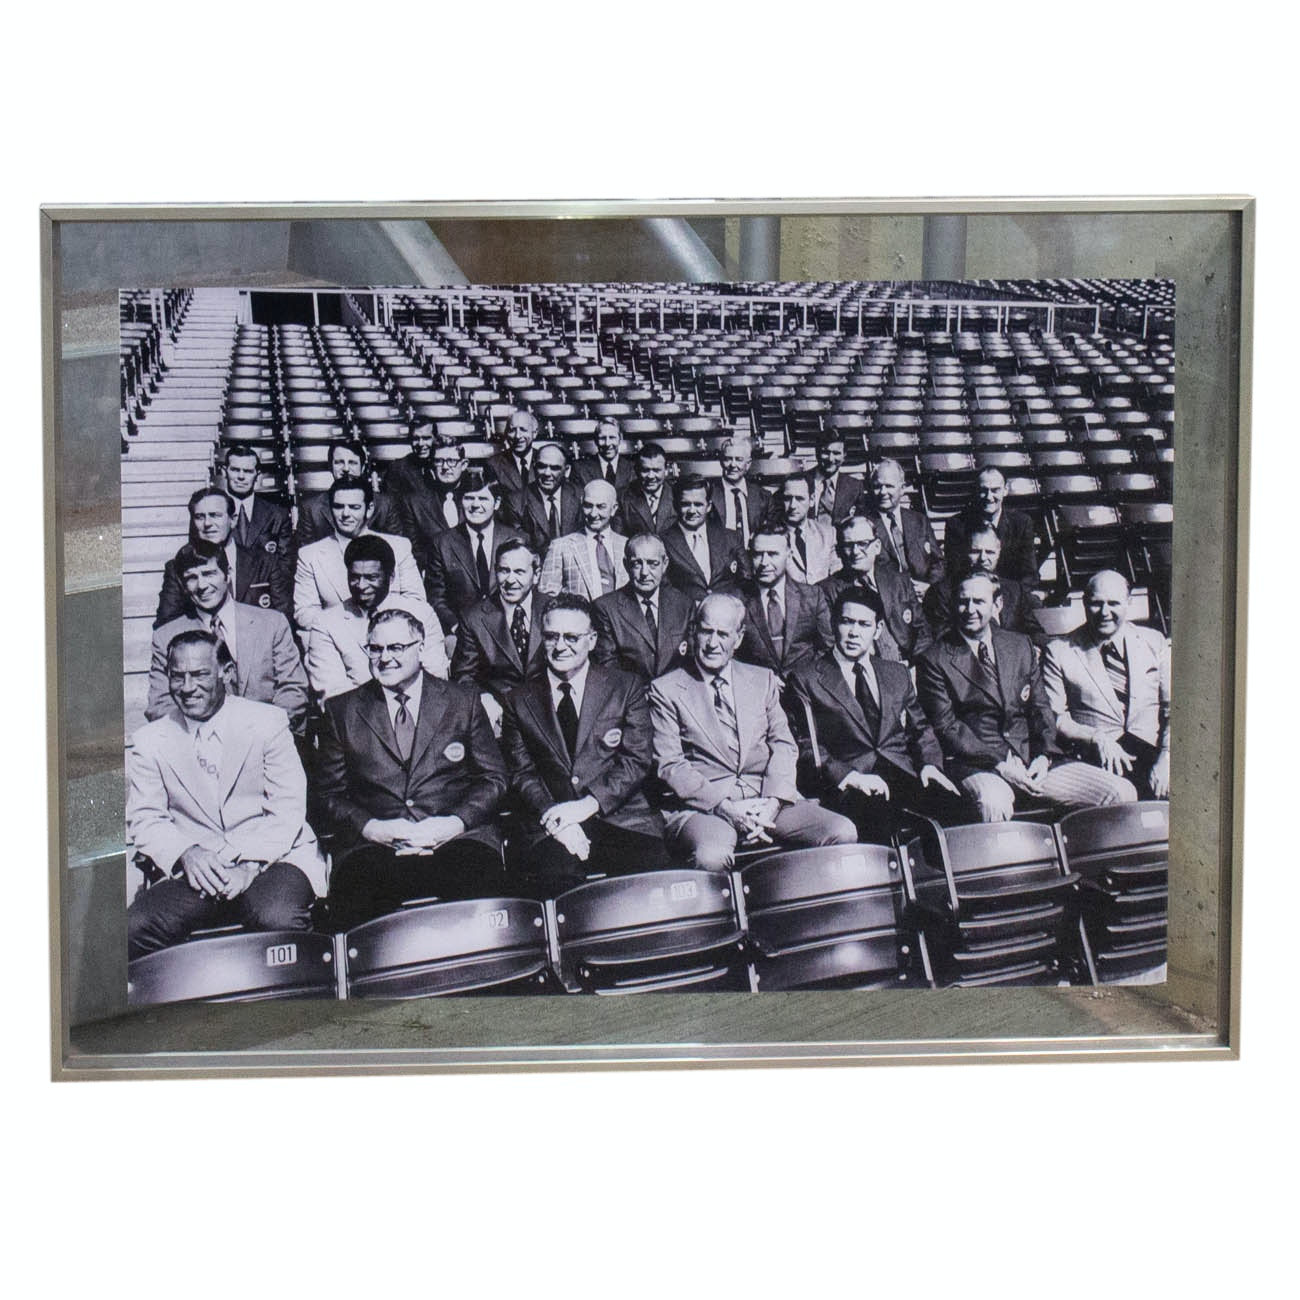 Framed Group Photograph of Cincinnati Official at Newly Built Riverfront COA